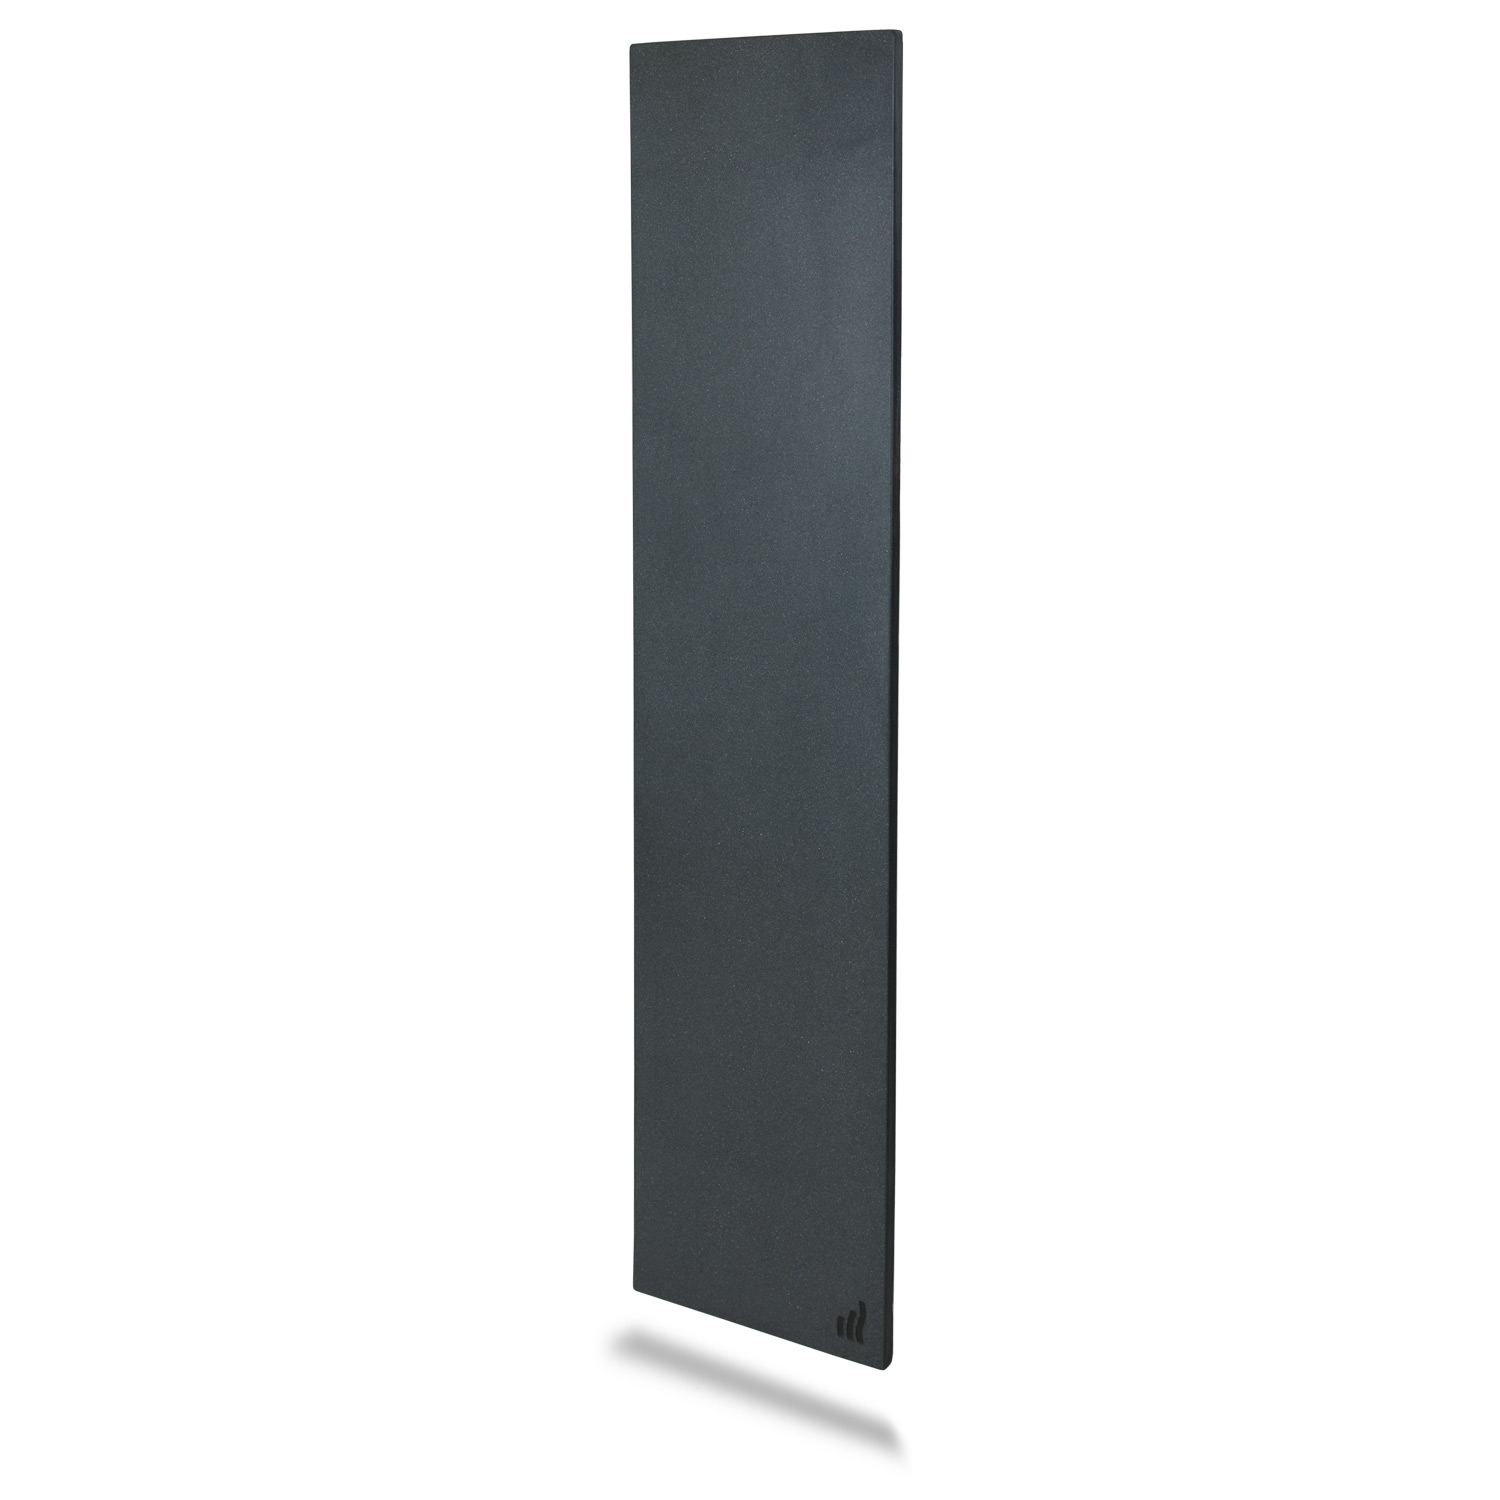 http://www.radson.com/images/products/electricradiators/milo-rock-v-electric-radiators-radson-outside.jpg